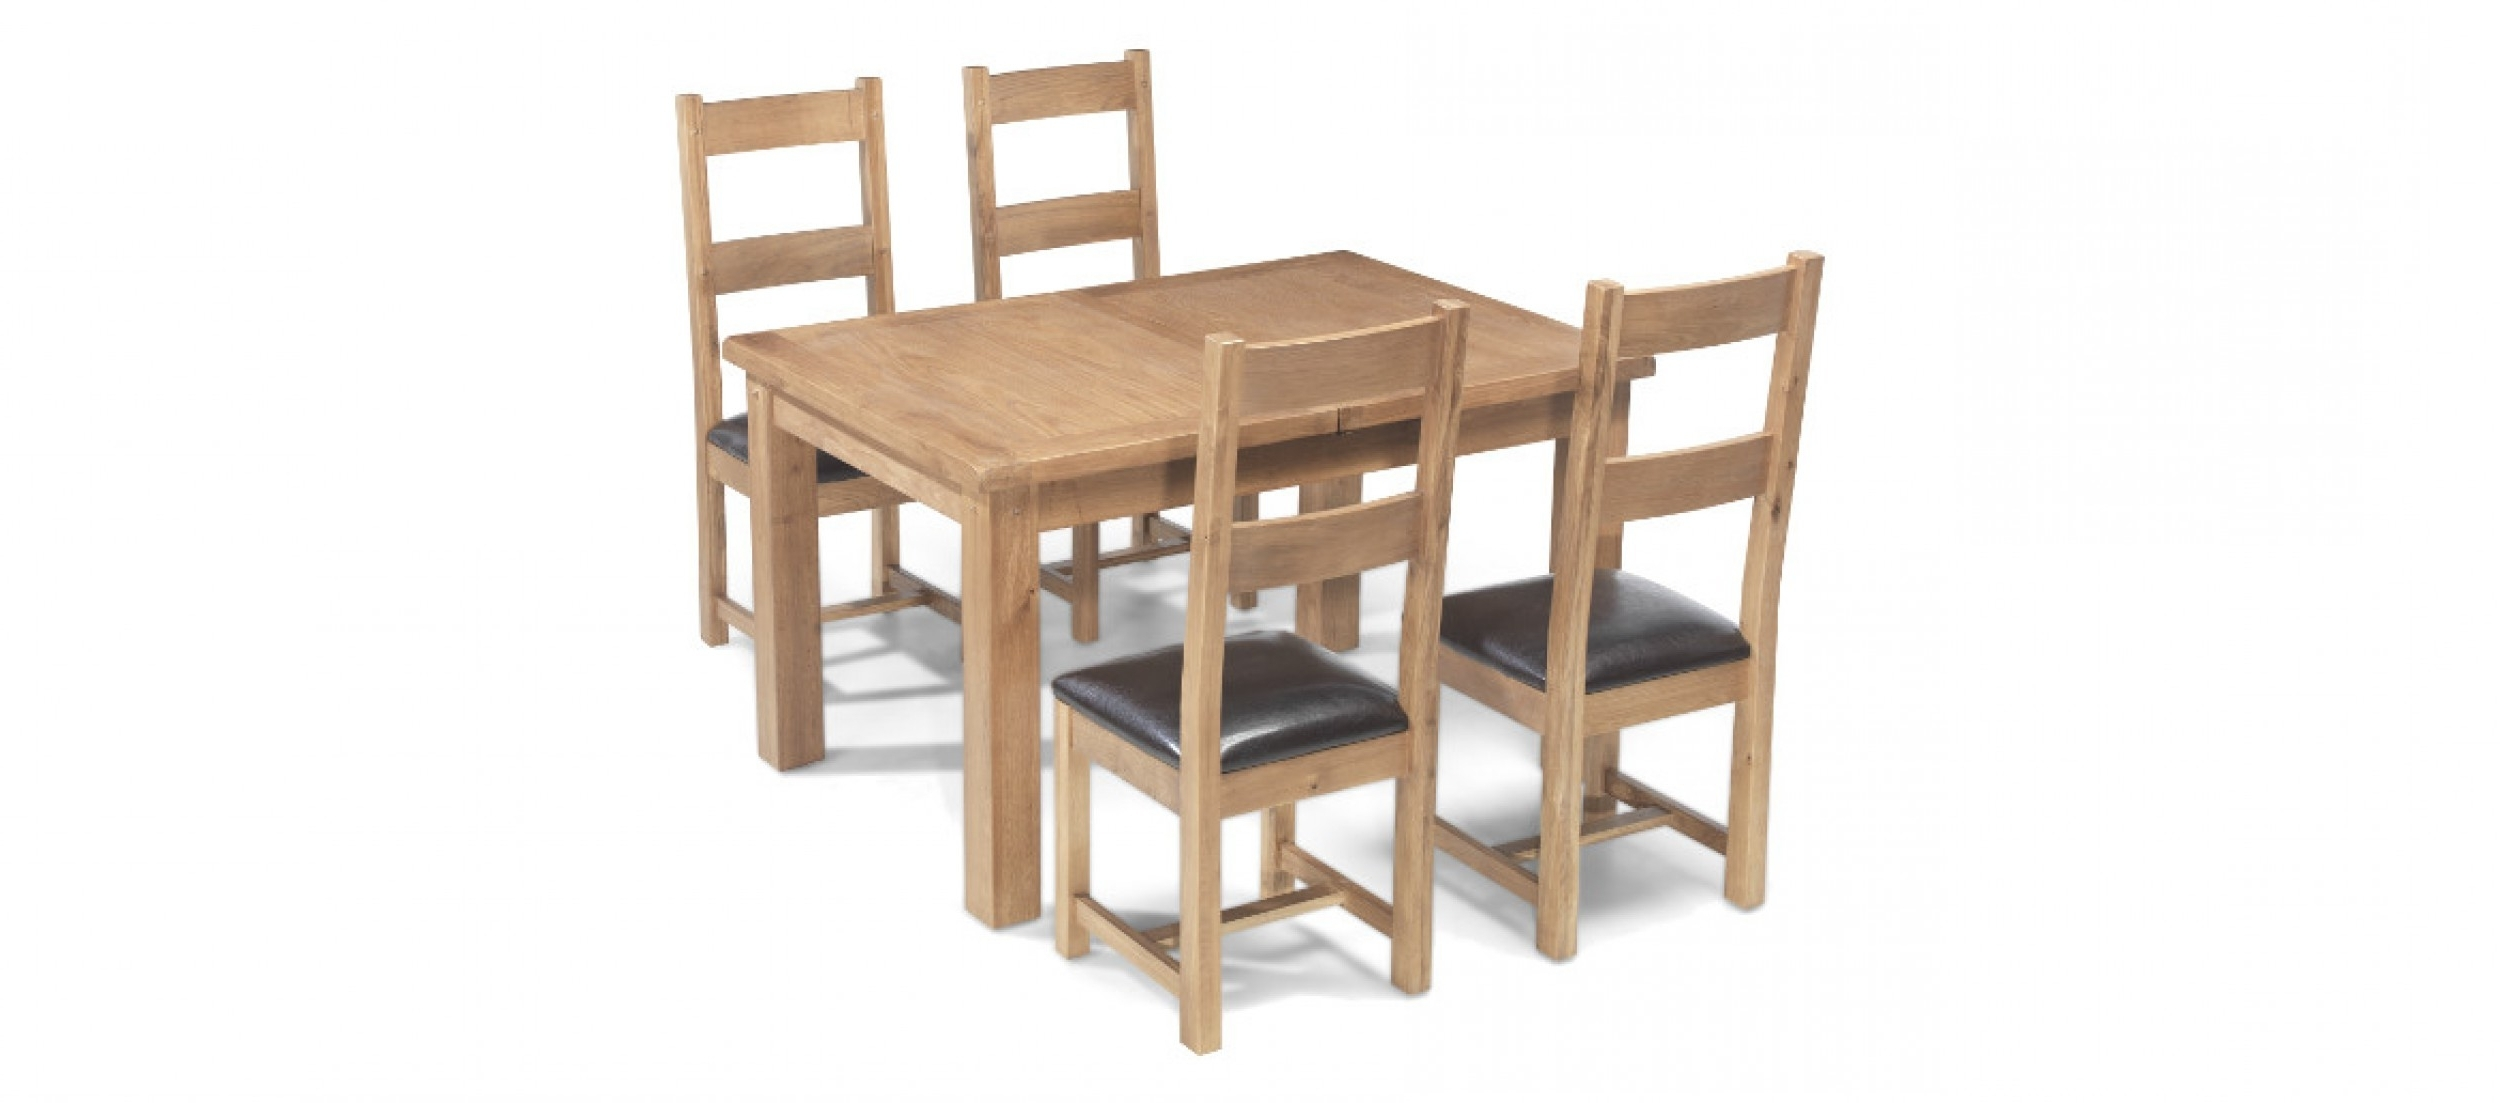 Quercus Throughout Most Current Extending Dining Tables And Chairs (Gallery 20 of 25)